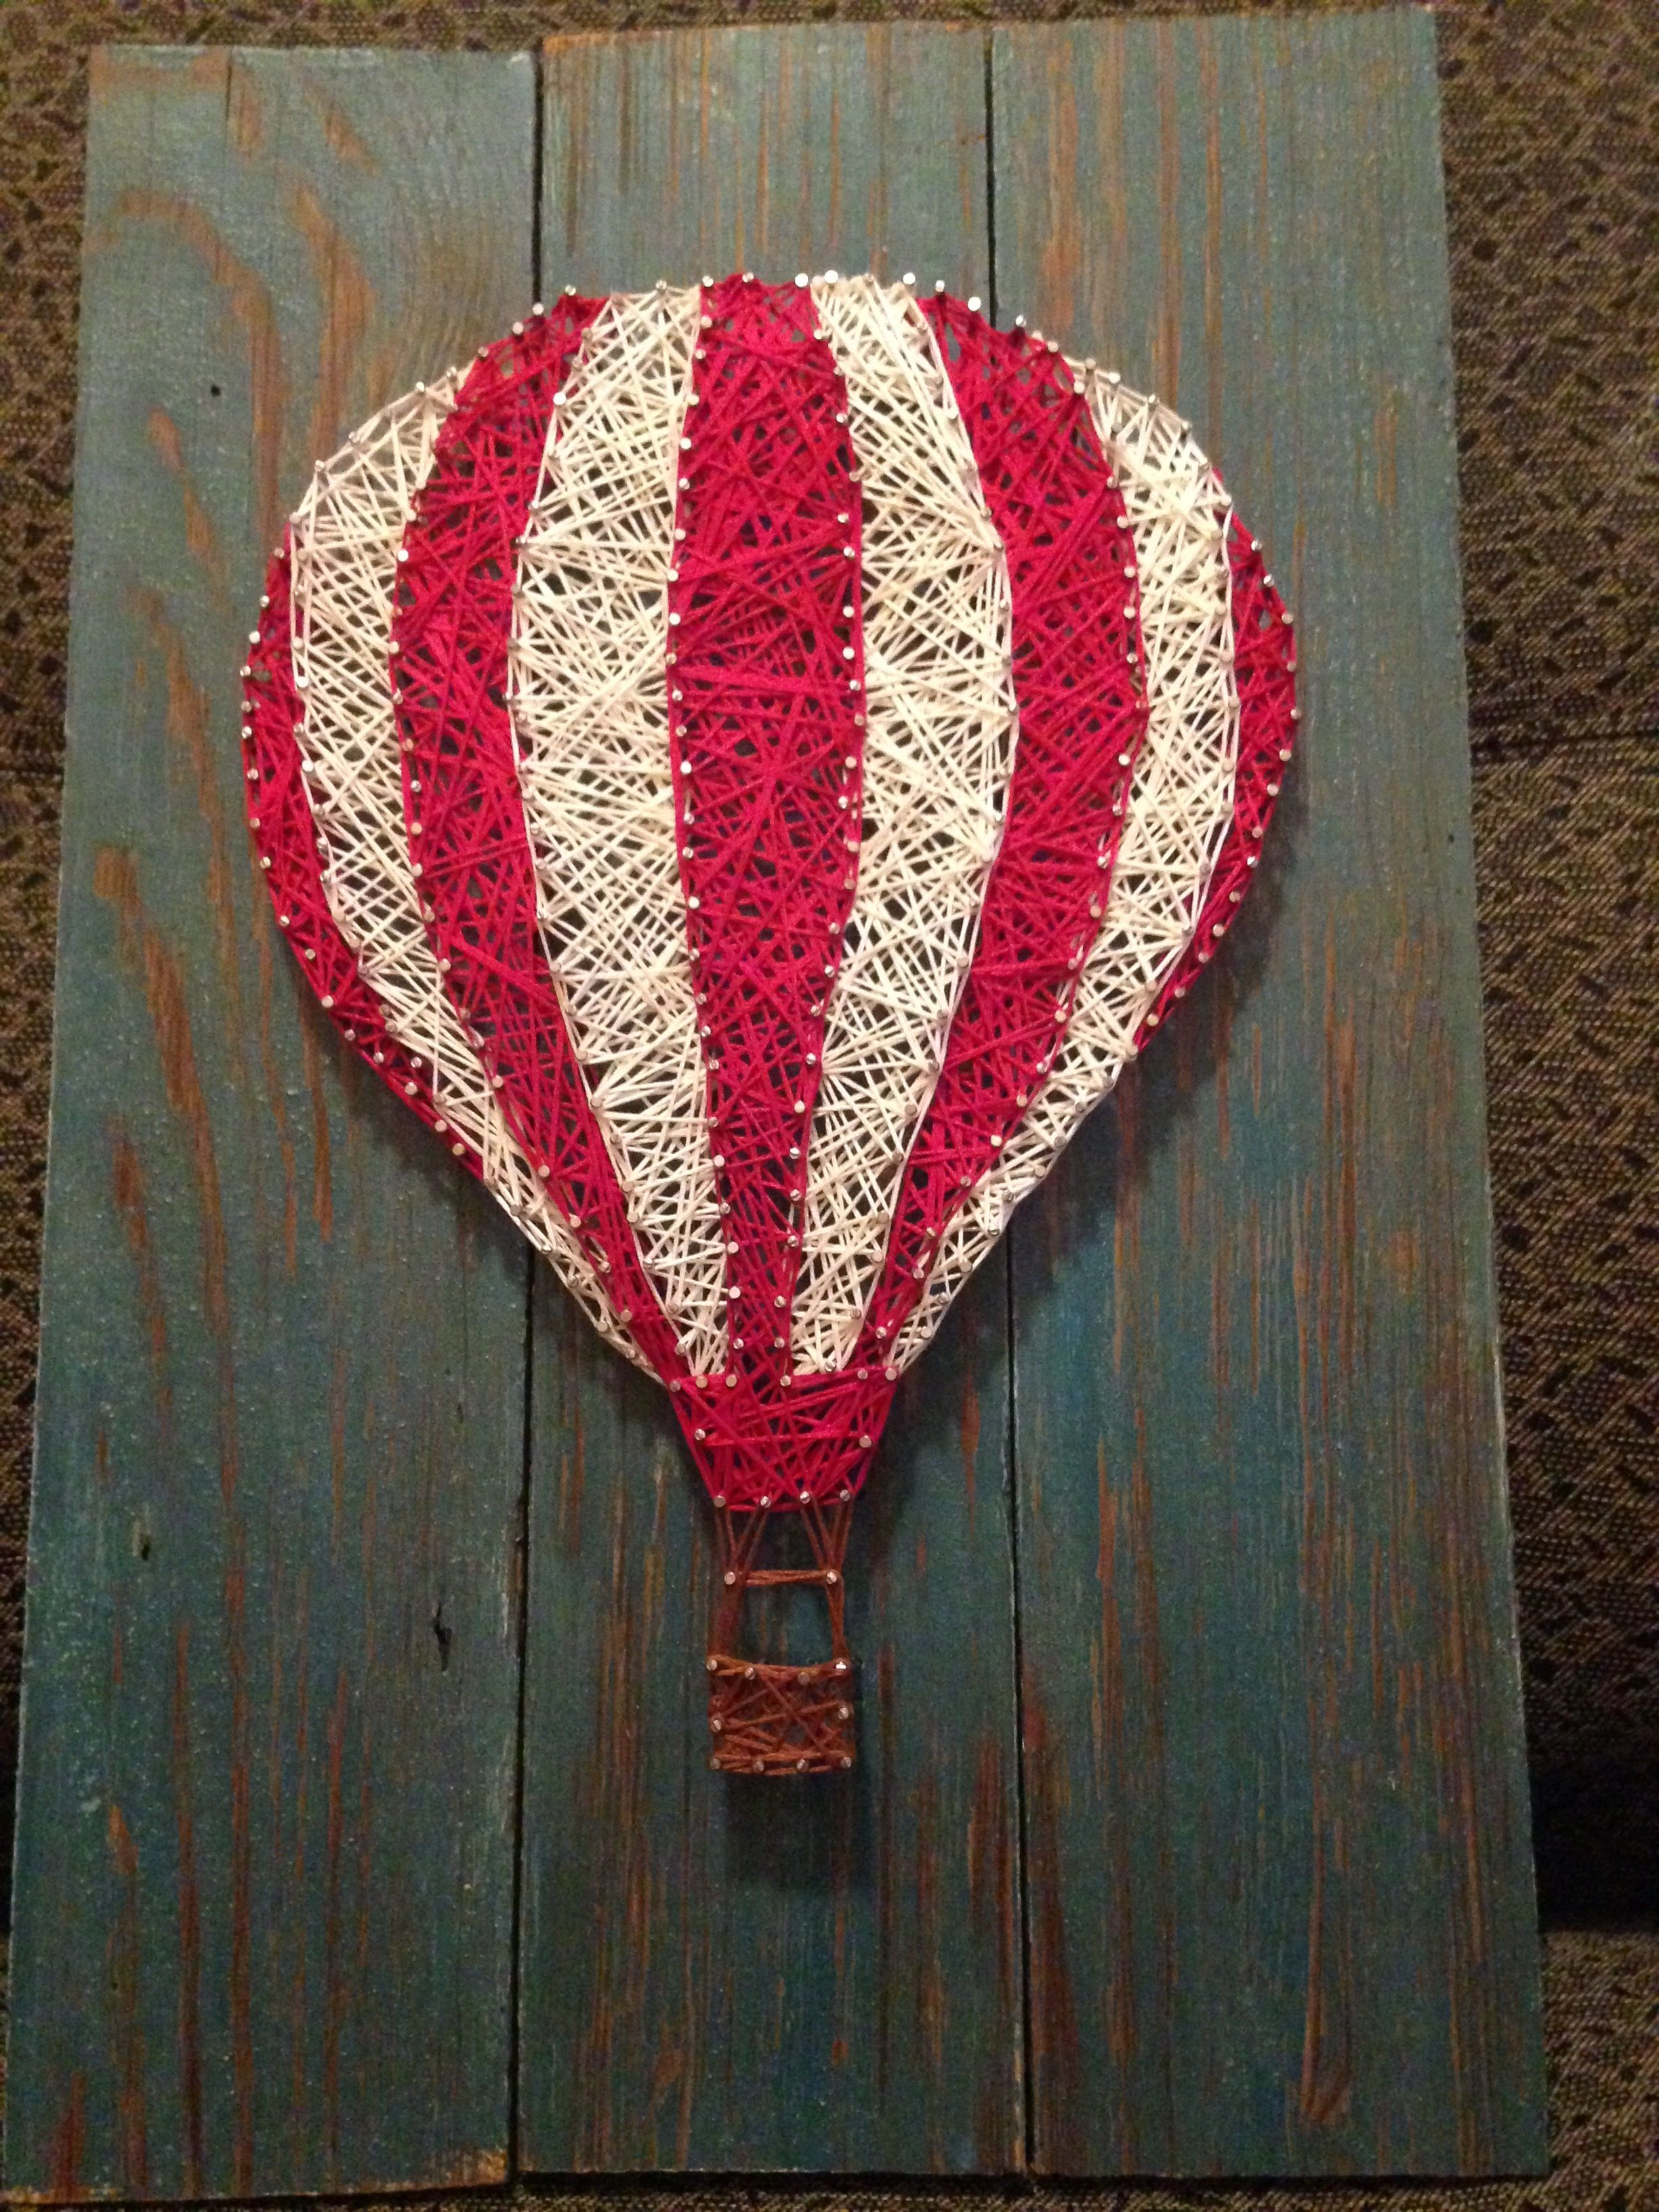 Uncategorized String Art Balloons made a hot air balloon with string art for my girlfriend using wood i found in the attic of barn